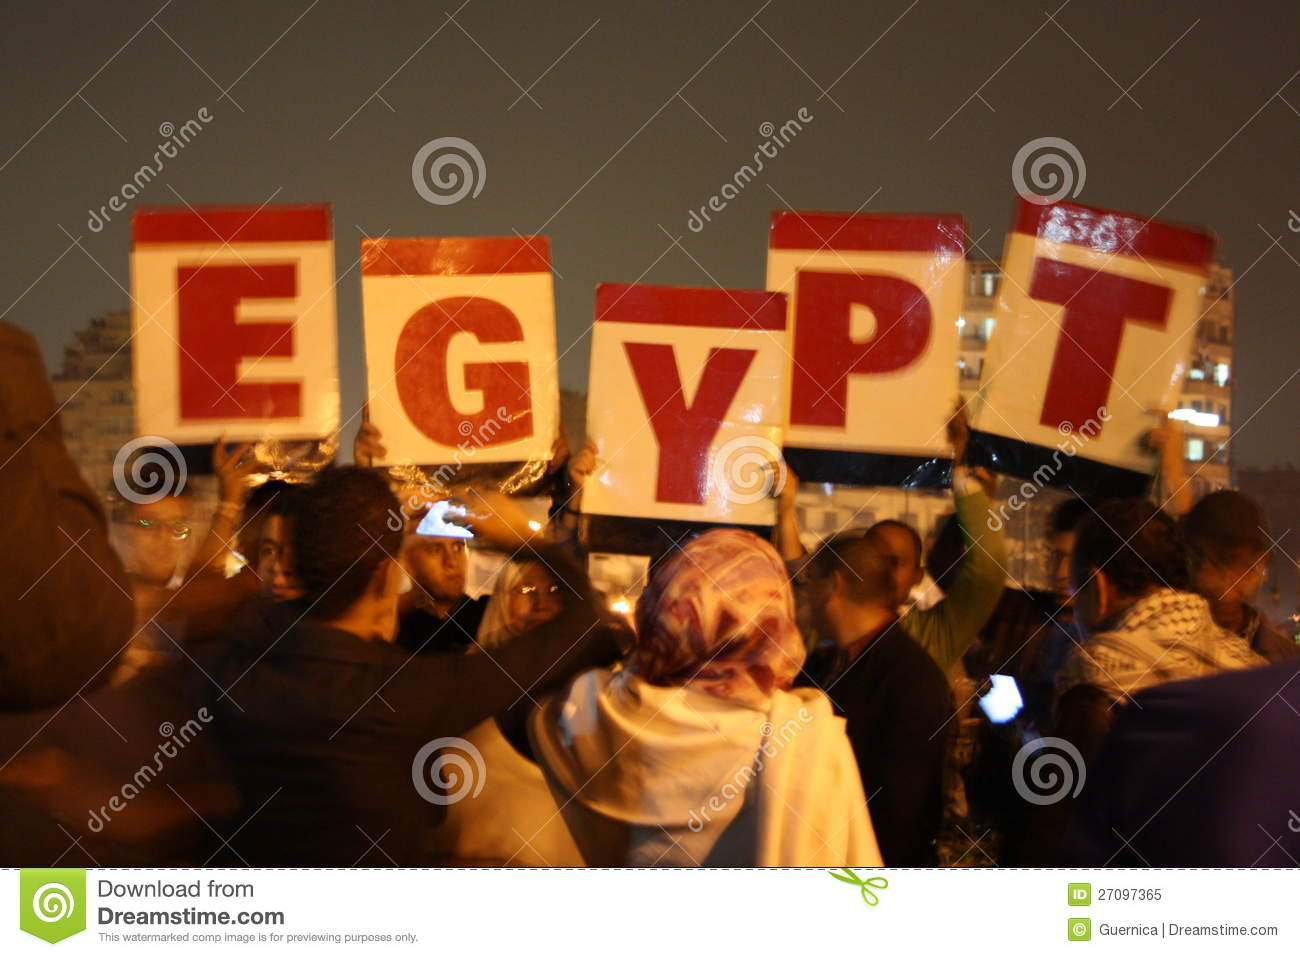 People protesting in Tahrir Square